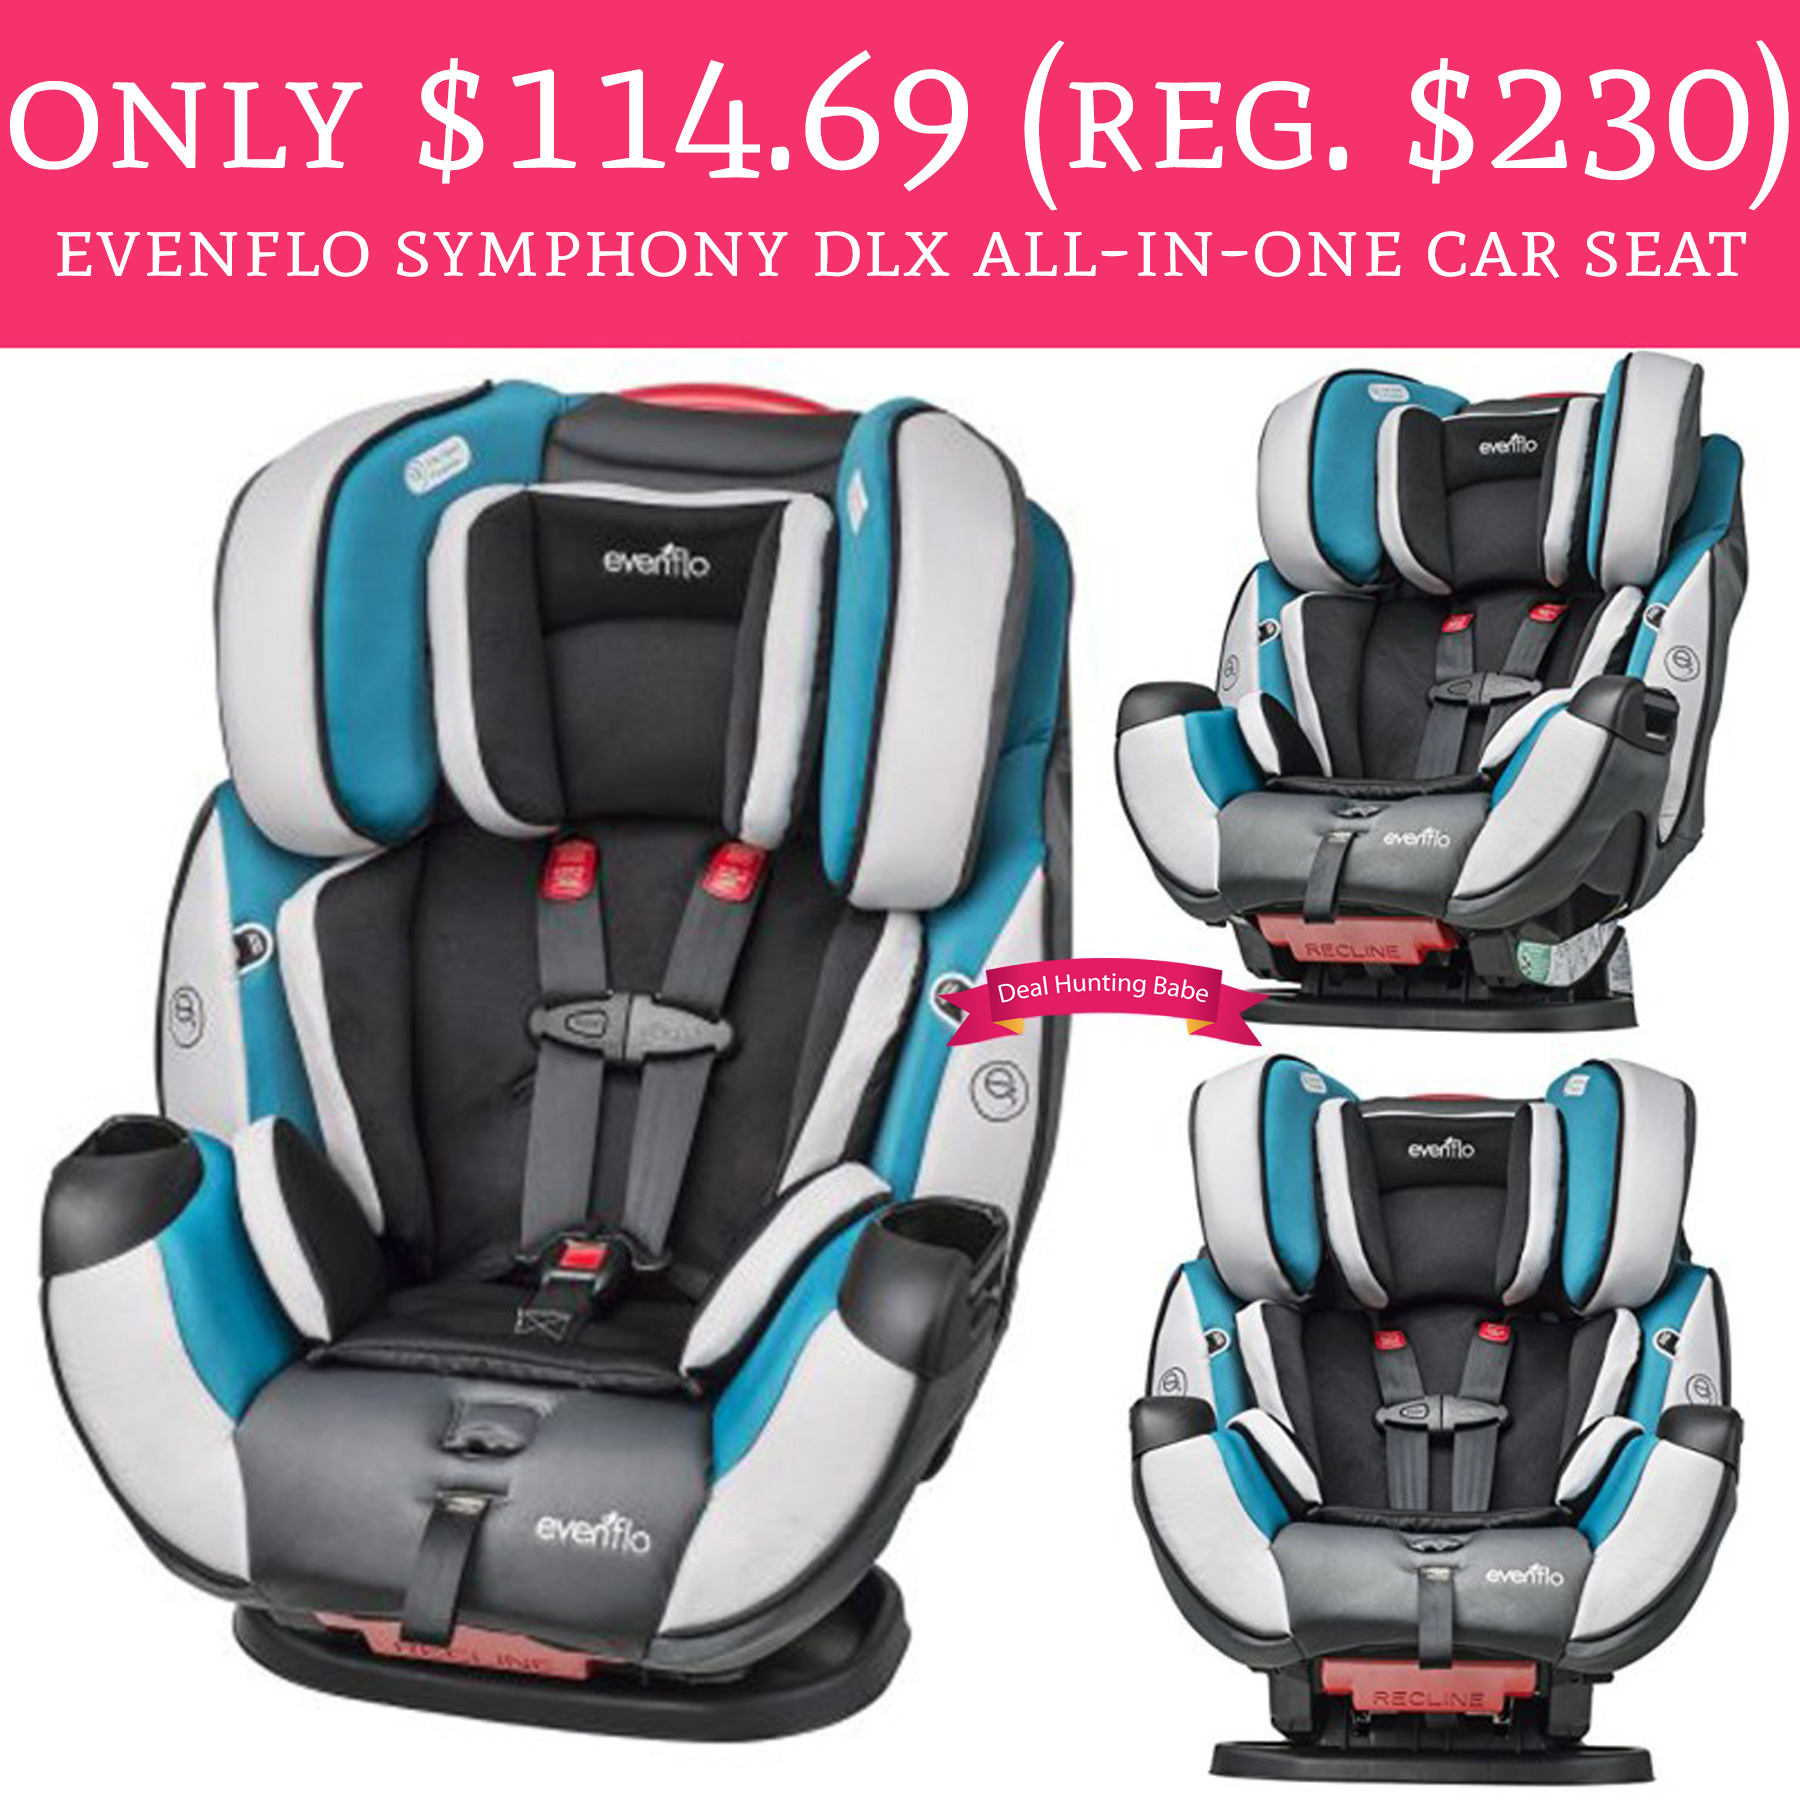 Calling All Parents And To Be Head Amazon Grab This Hot Deal On Evenflo Symphony DLX In One Convertible Car Seat